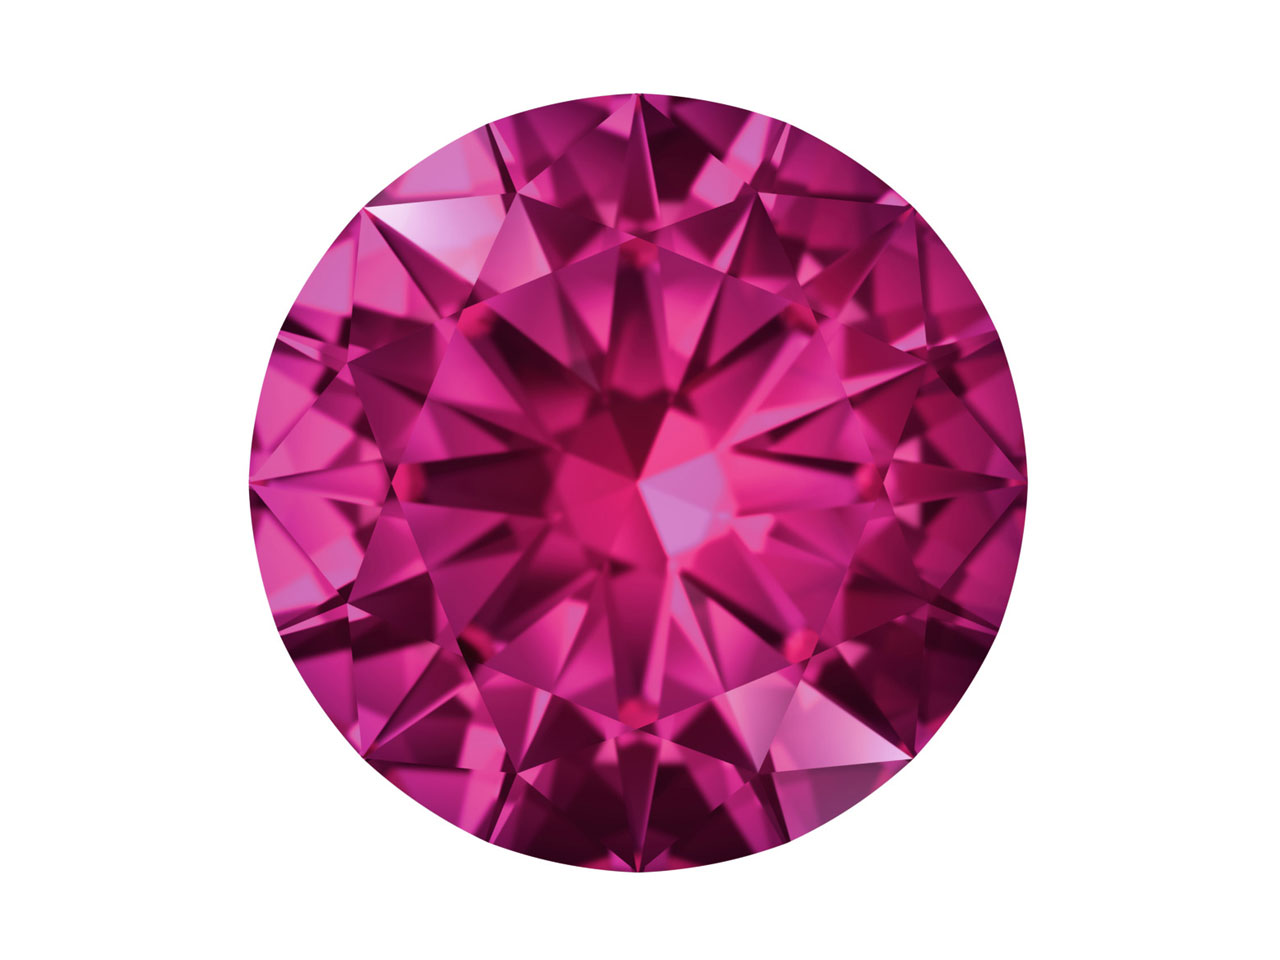 Swarovski Gemstones Pink Sapphire  Round Brilliant Cut 1.0mm Pink     Medium